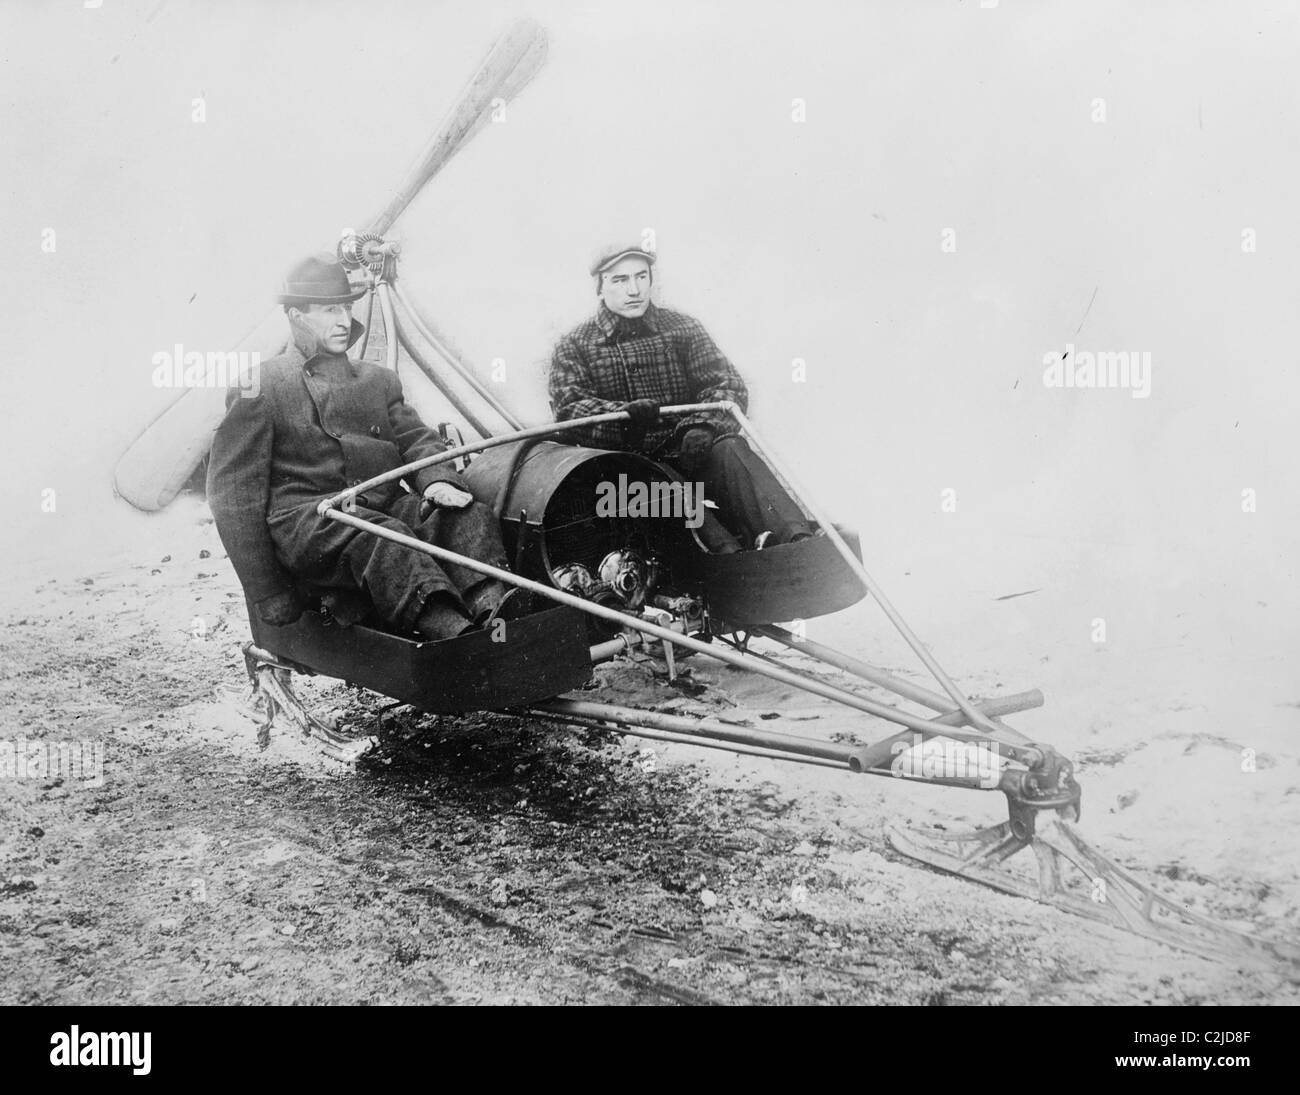 Sled Black and White Stock Photos & Images